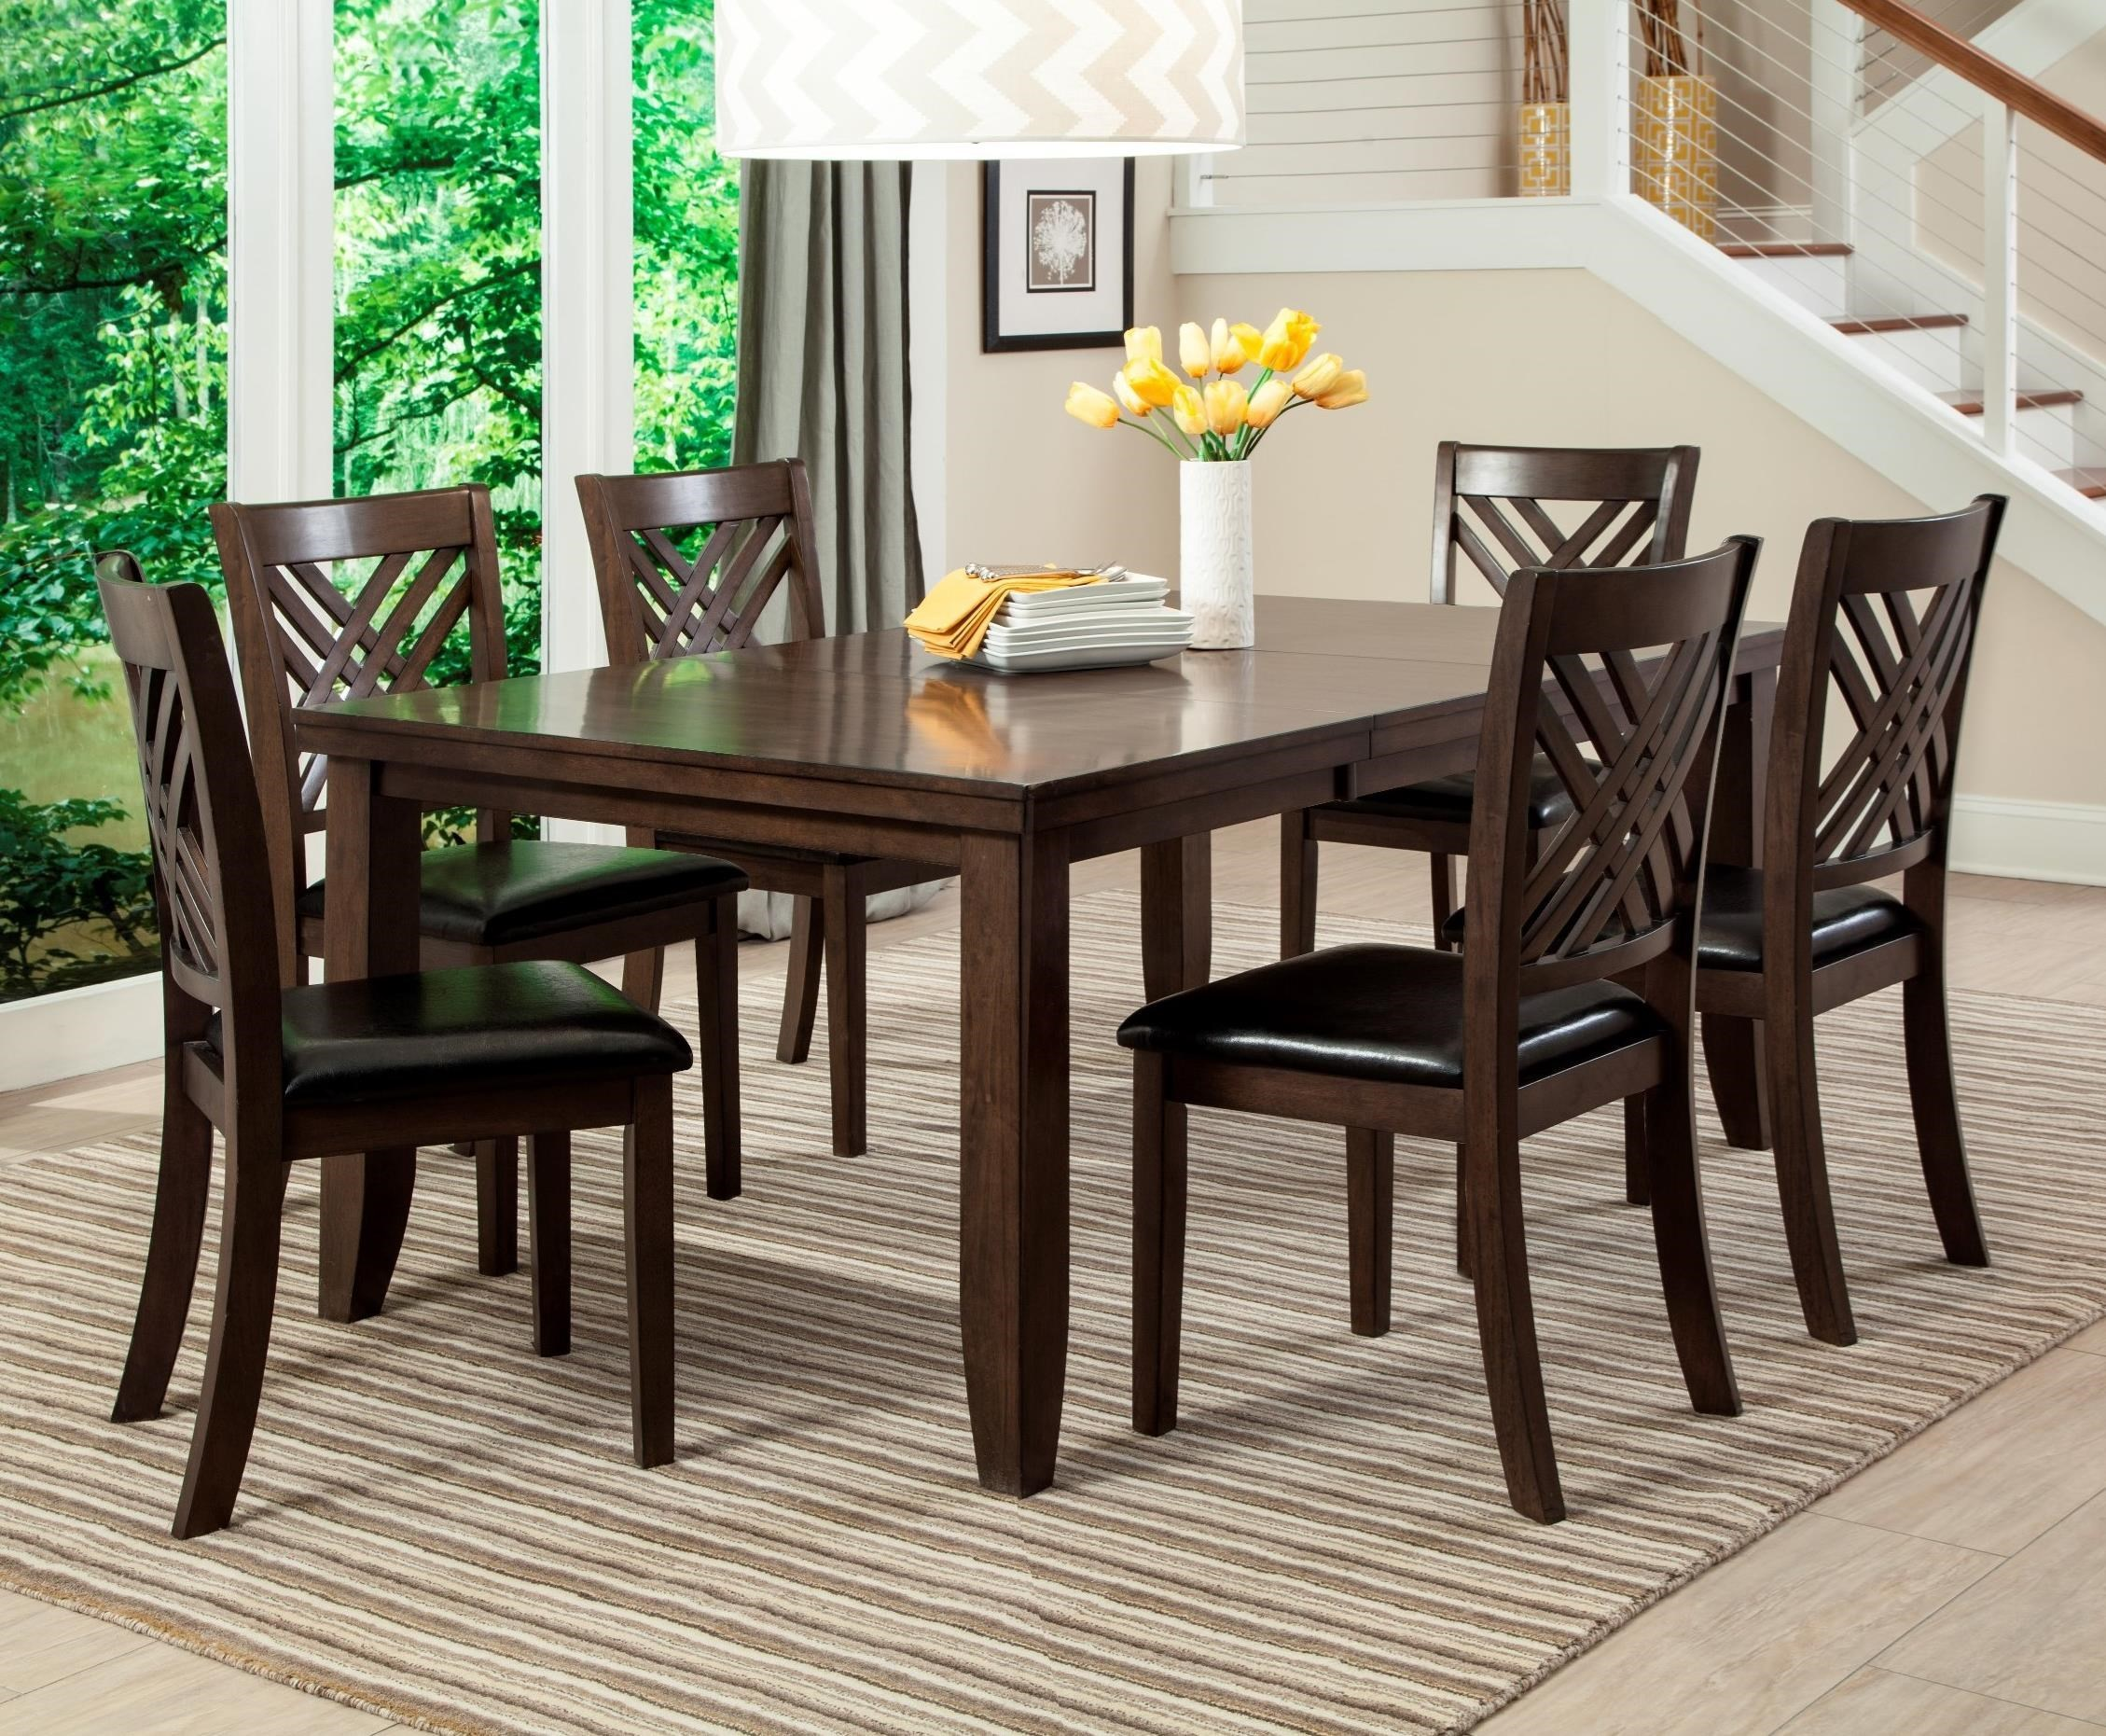 Charmant Lifestyle Cassidy 7 Piece Table U0026 Chair Set With Butterfly Leaf